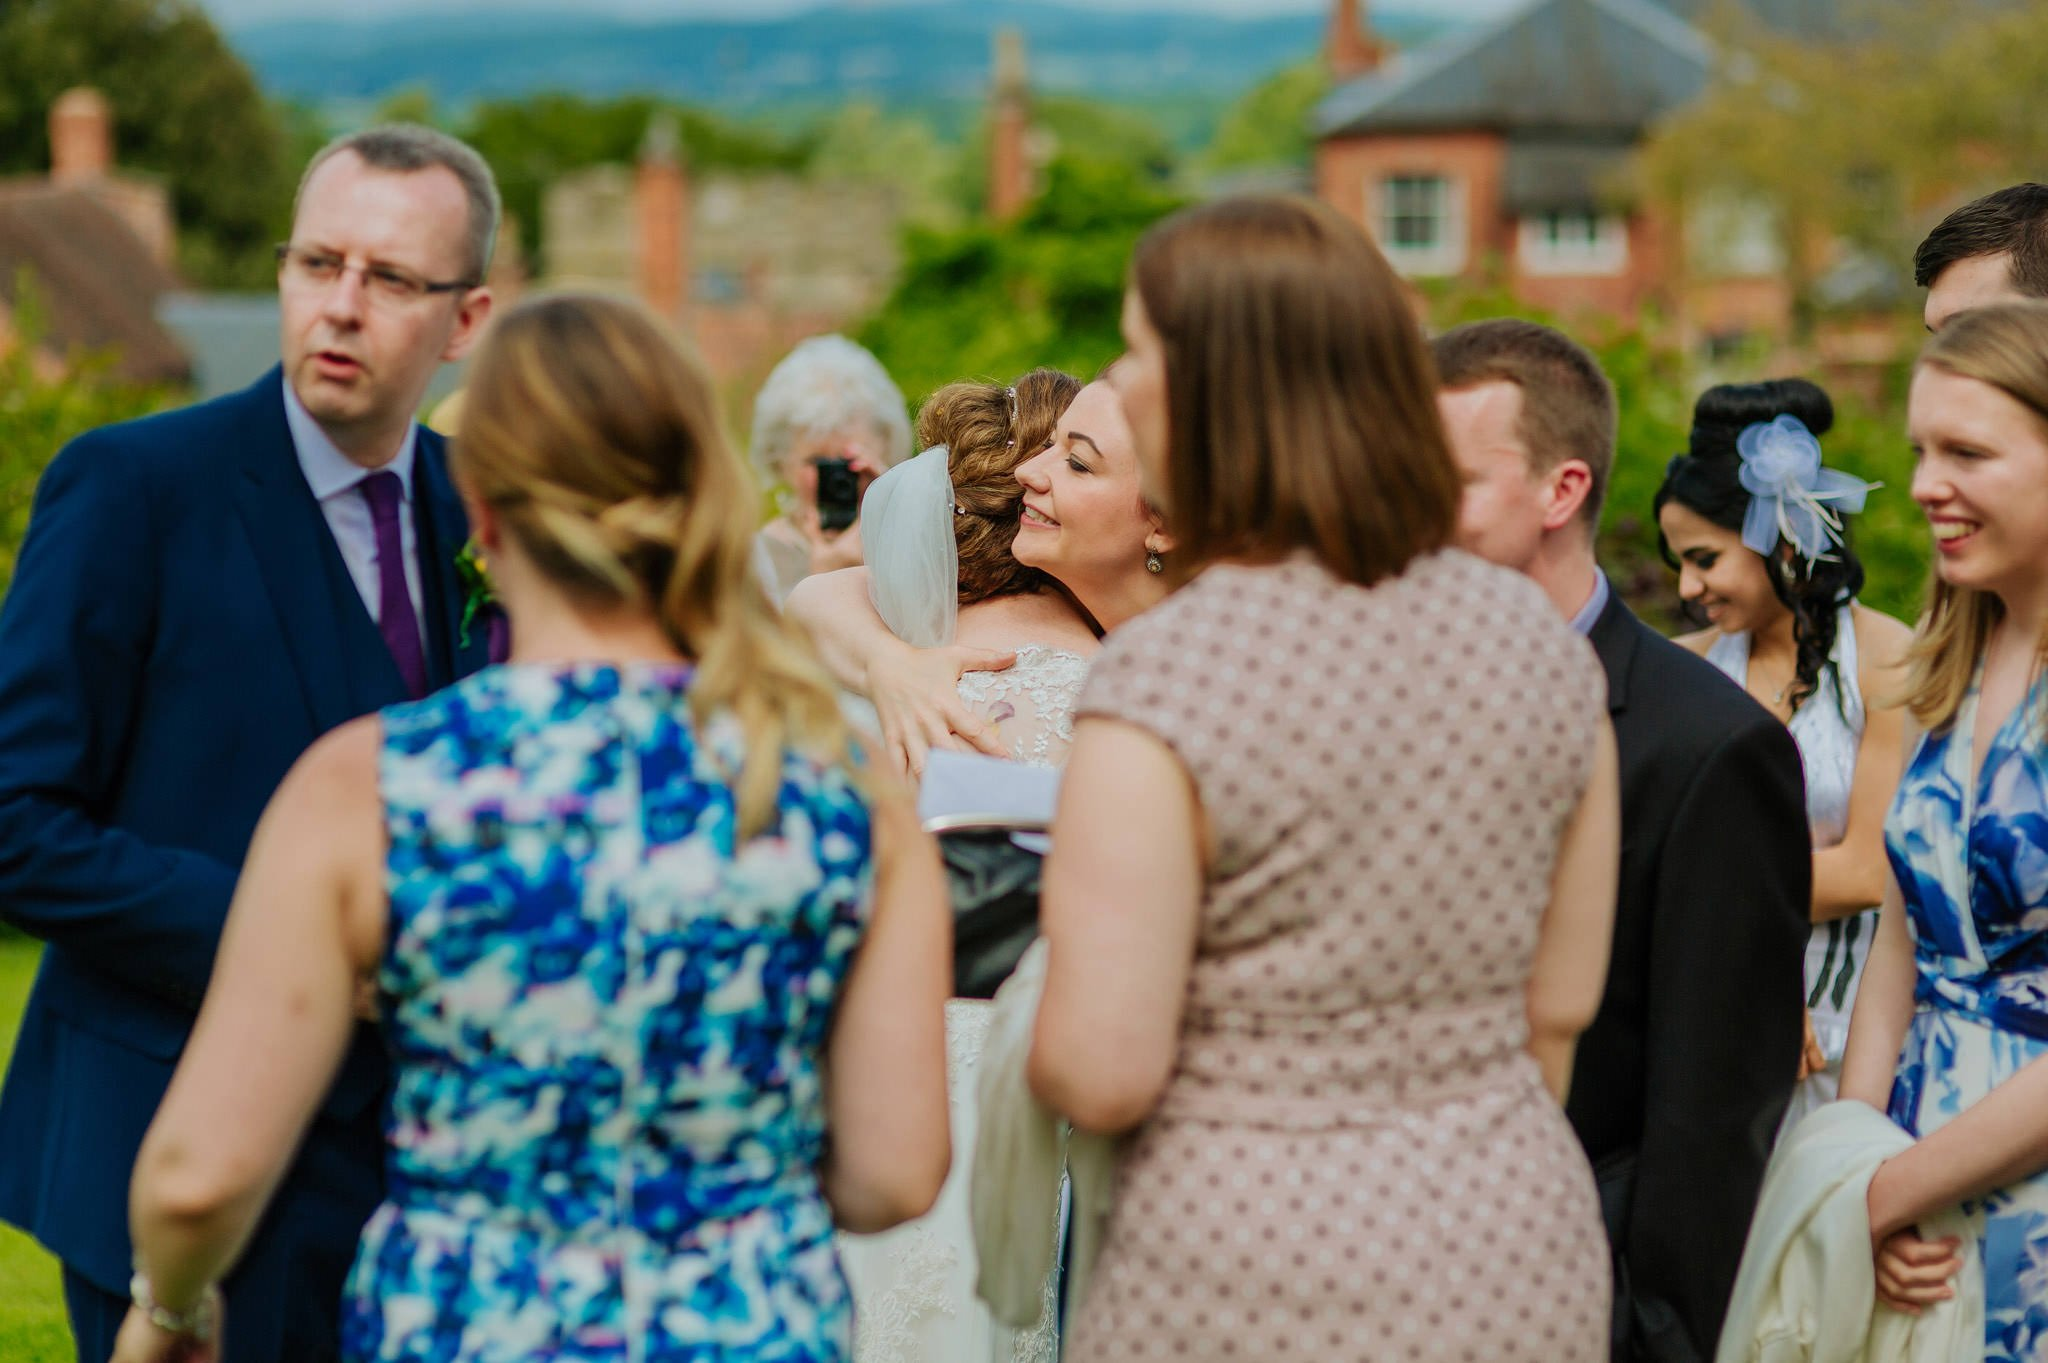 Wedding photography at Homme House in Herefordshire, West Midlands 43